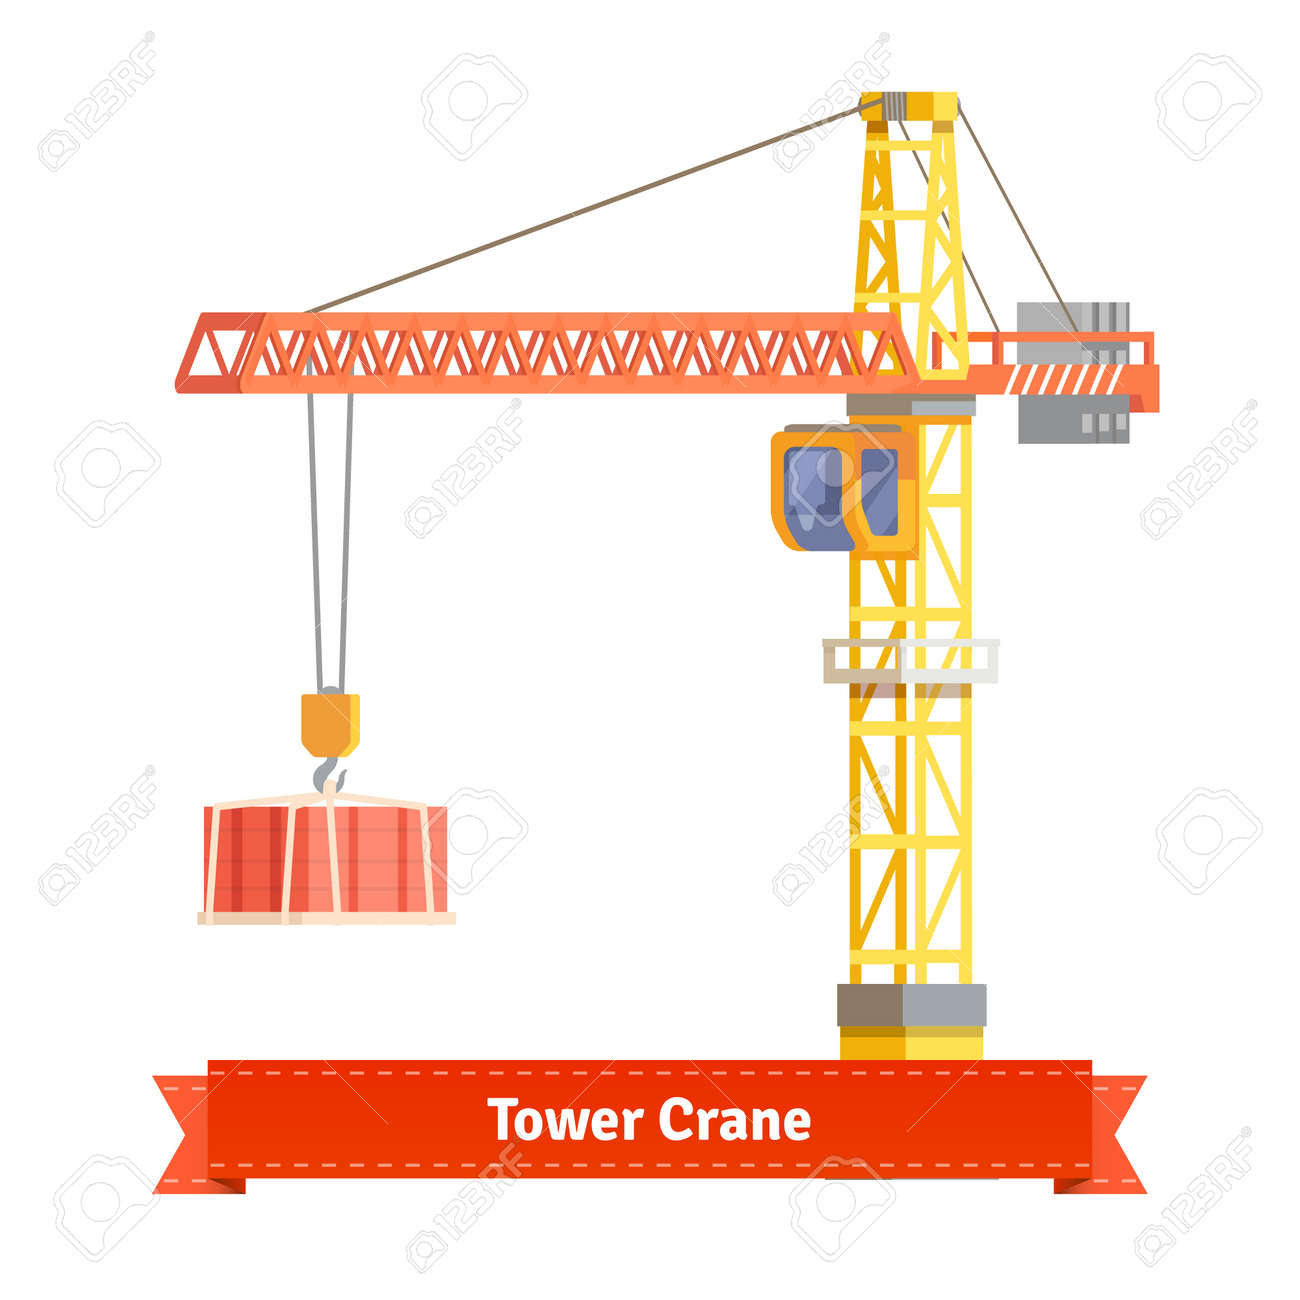 tower crane lifting building materials on the hook flat style